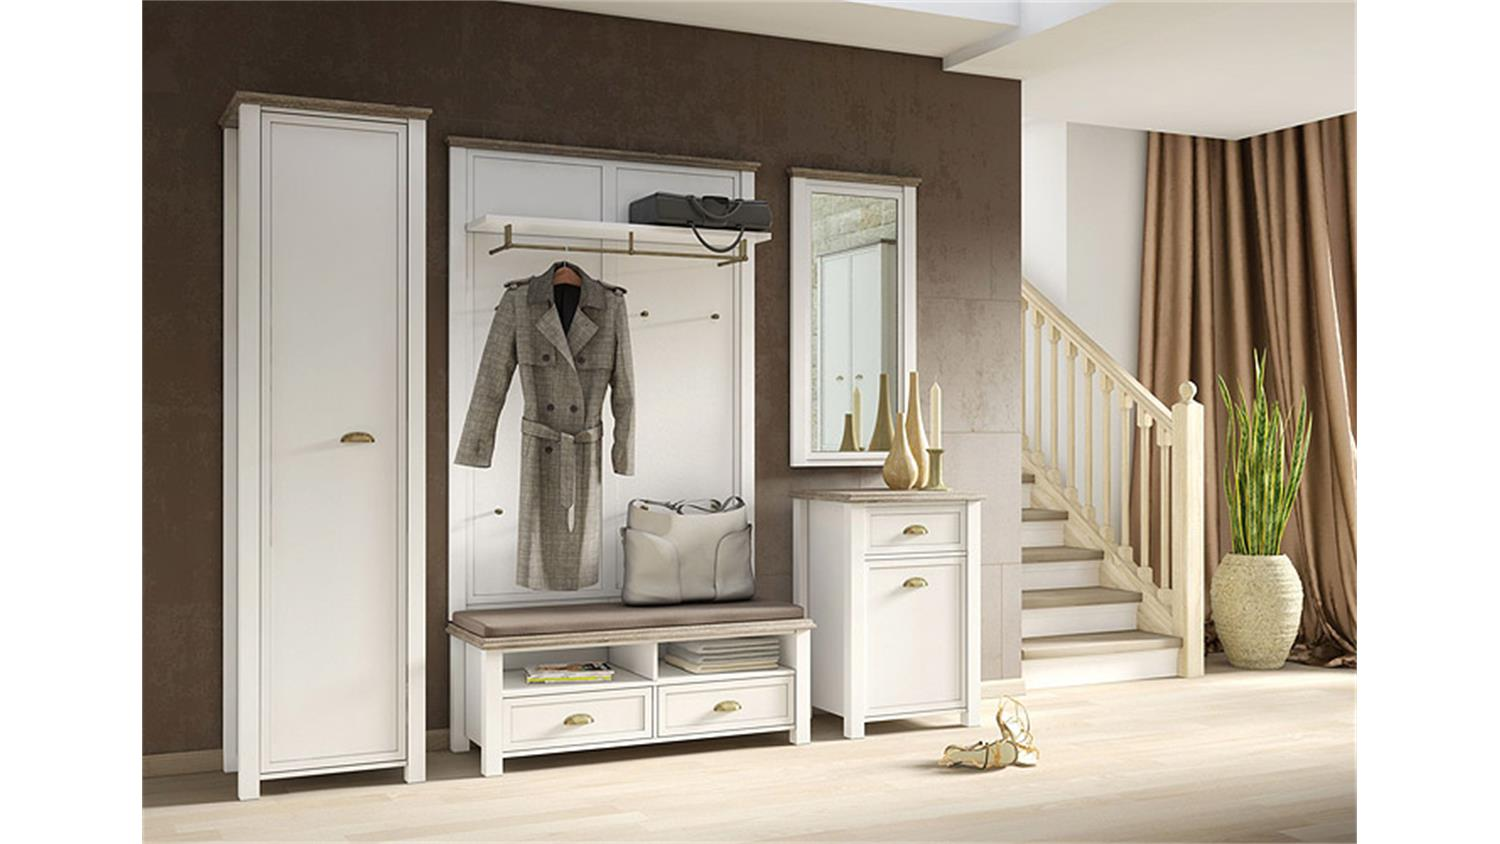 garderobe 4 chateau in wei und san remo eiche. Black Bedroom Furniture Sets. Home Design Ideas